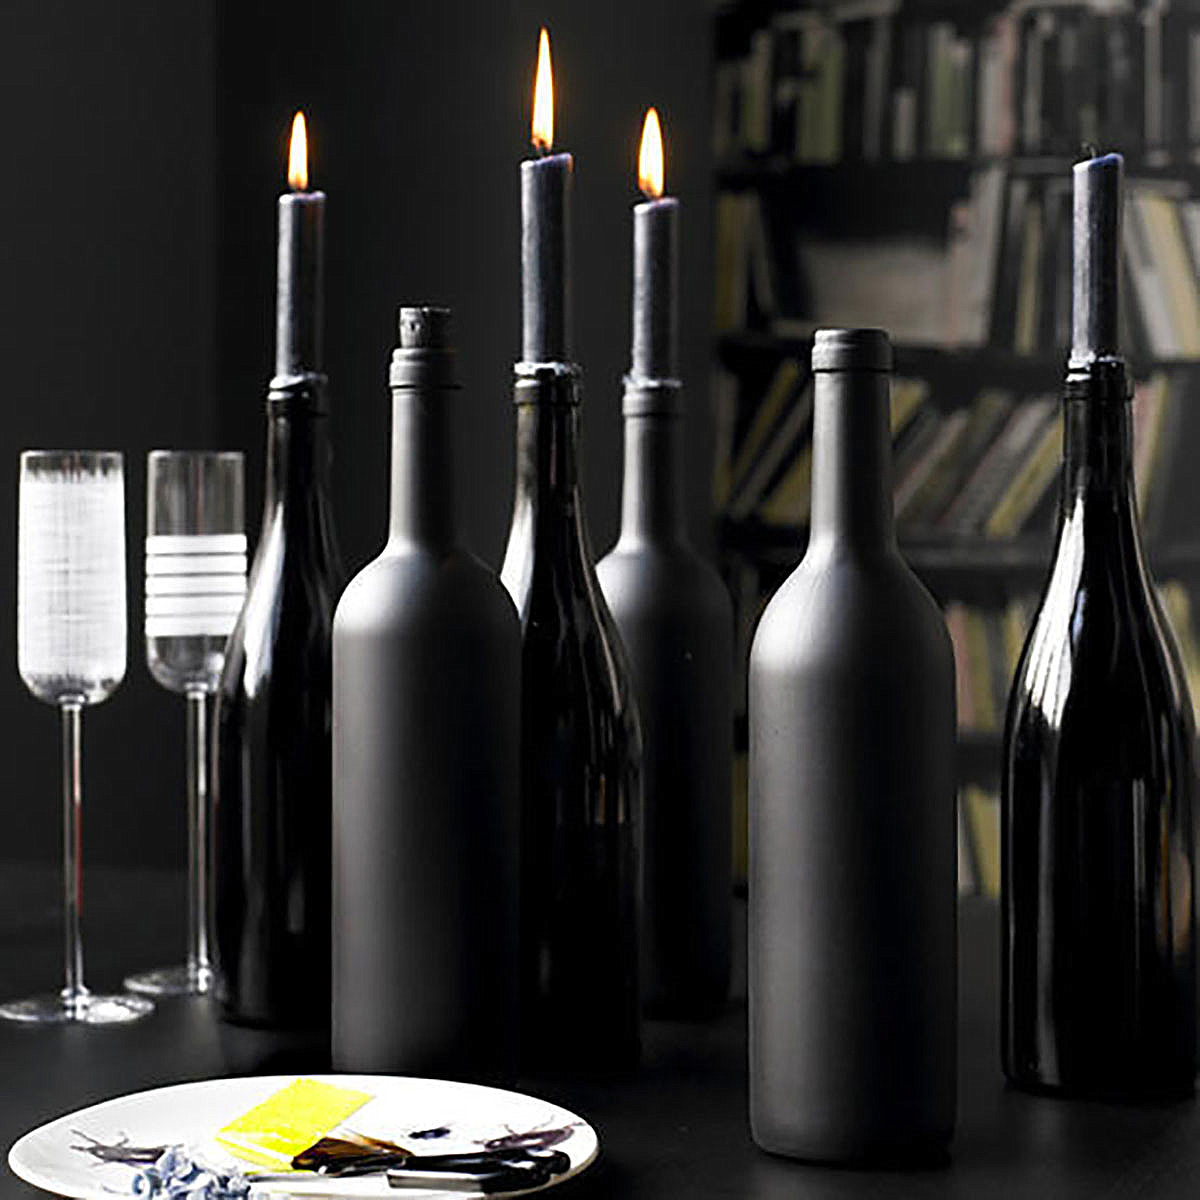 Wine bottle centerpiece for Halloween